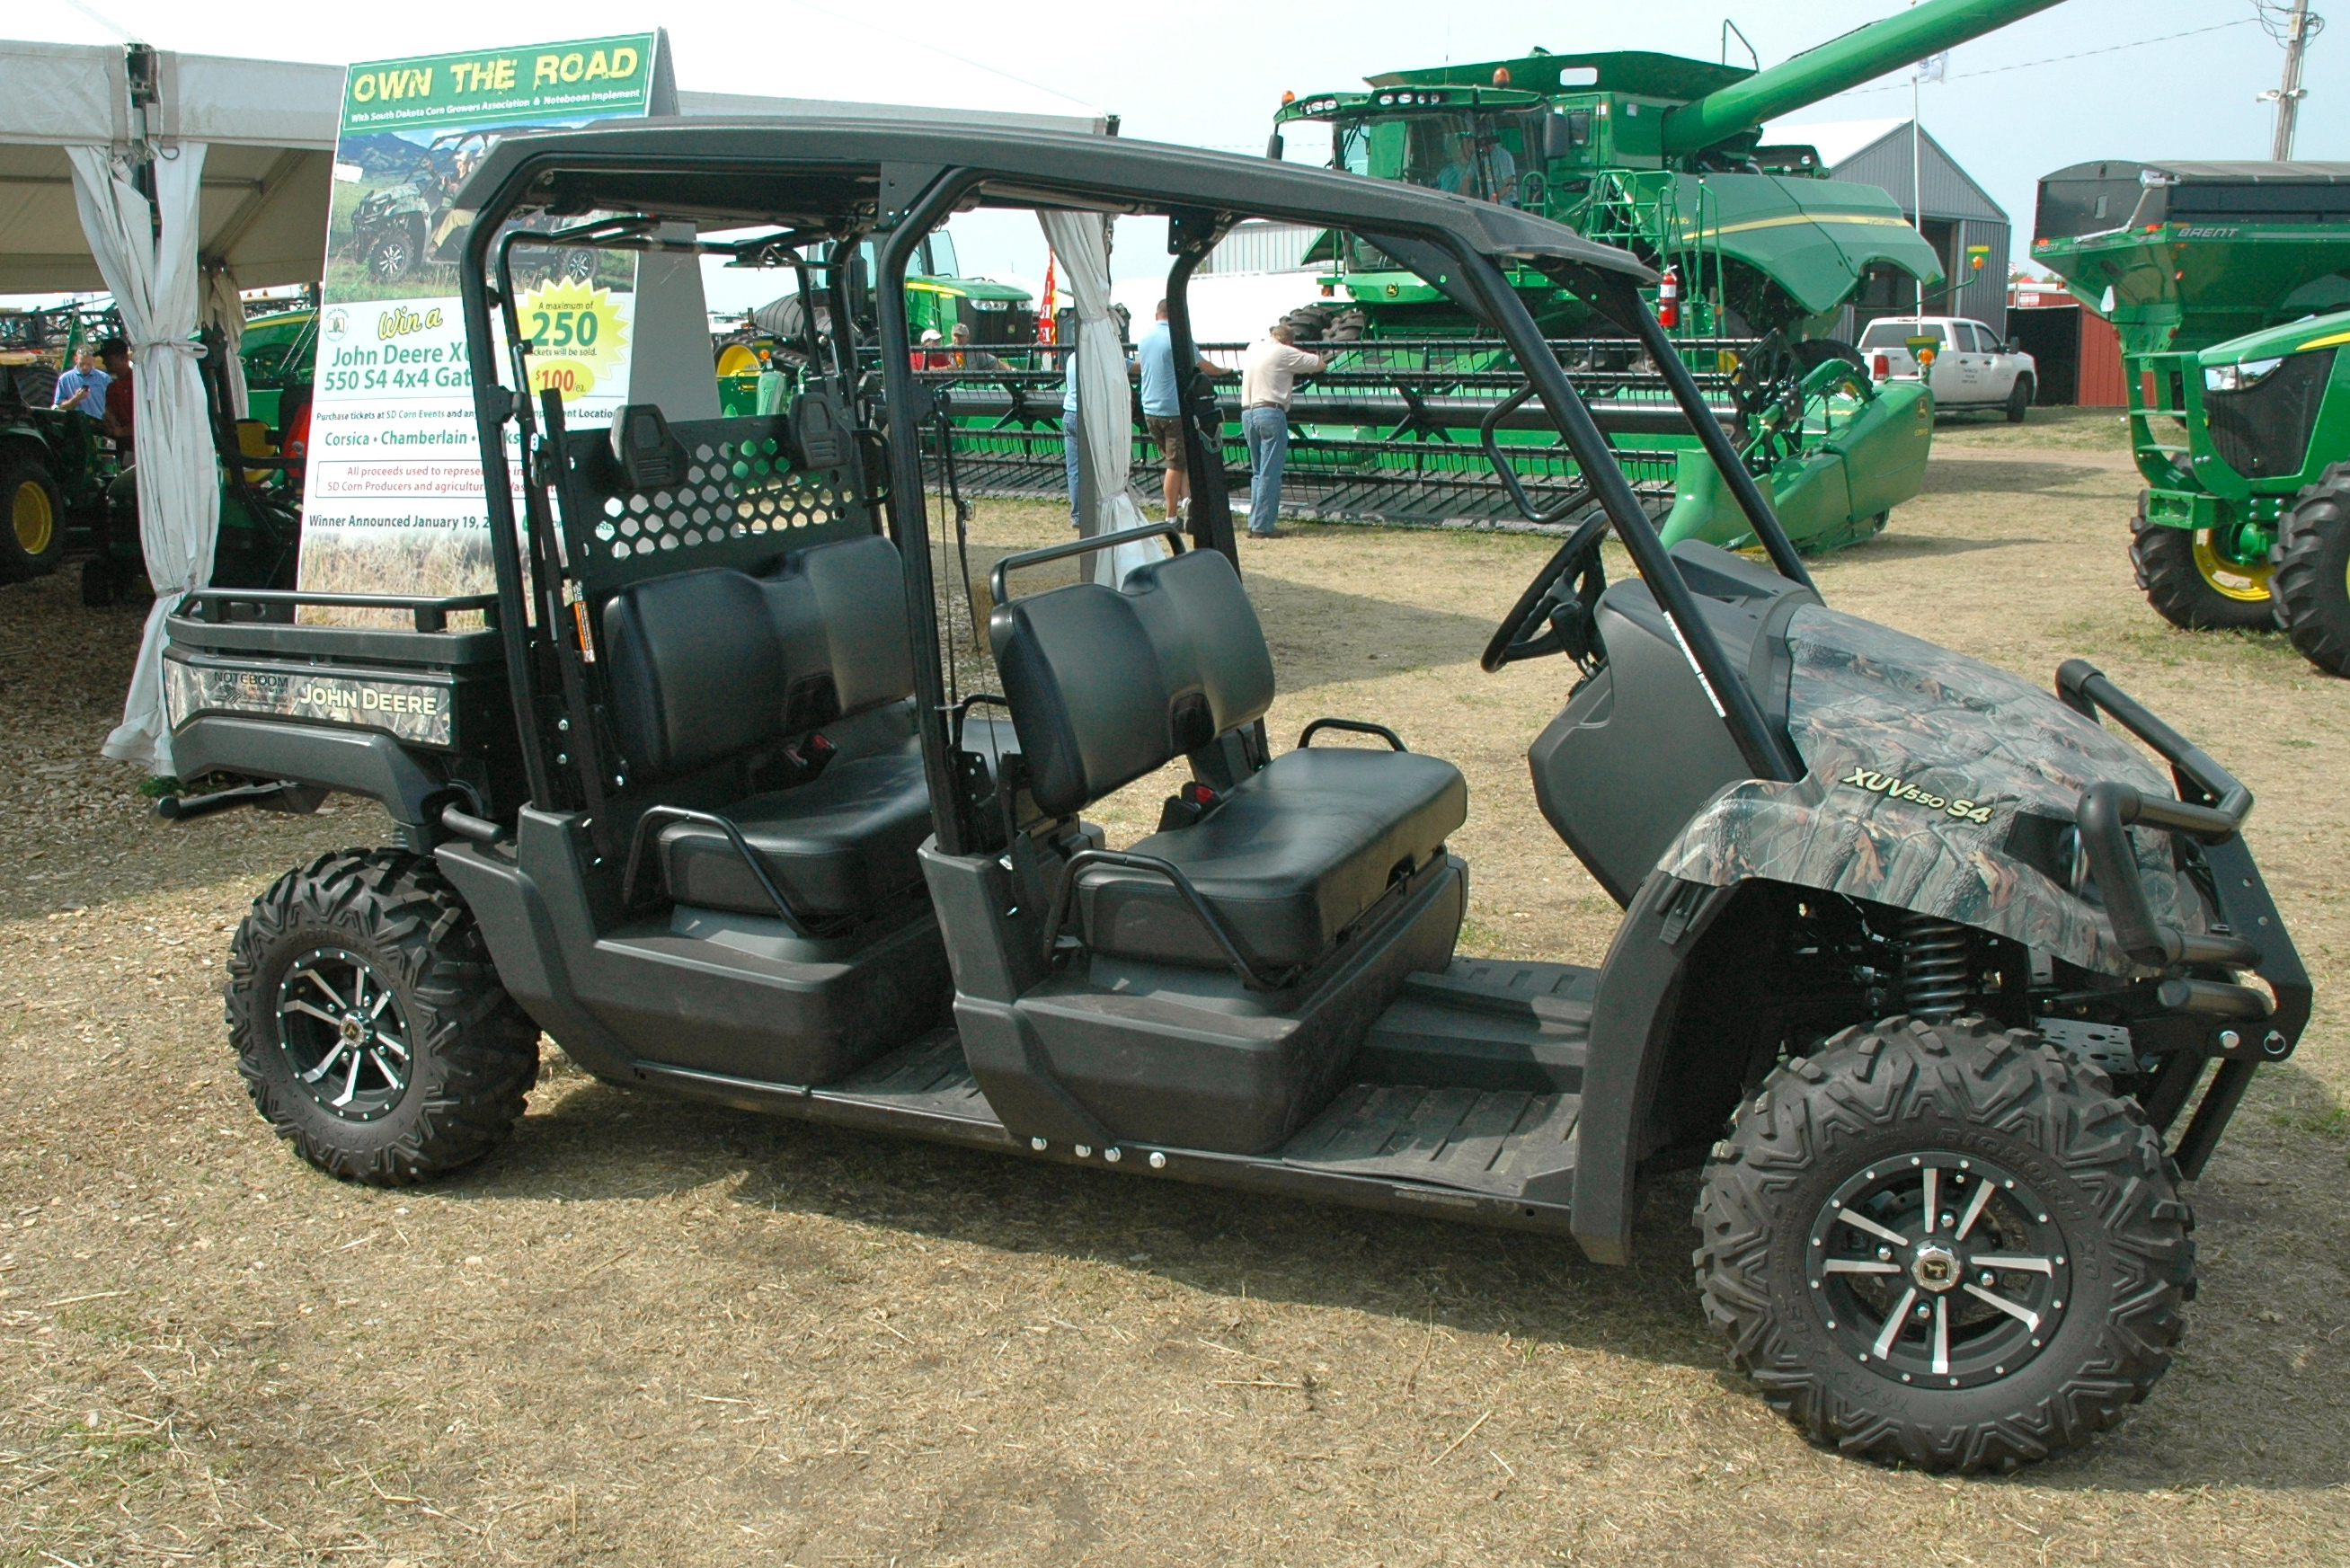 You could win this John Deere Gator